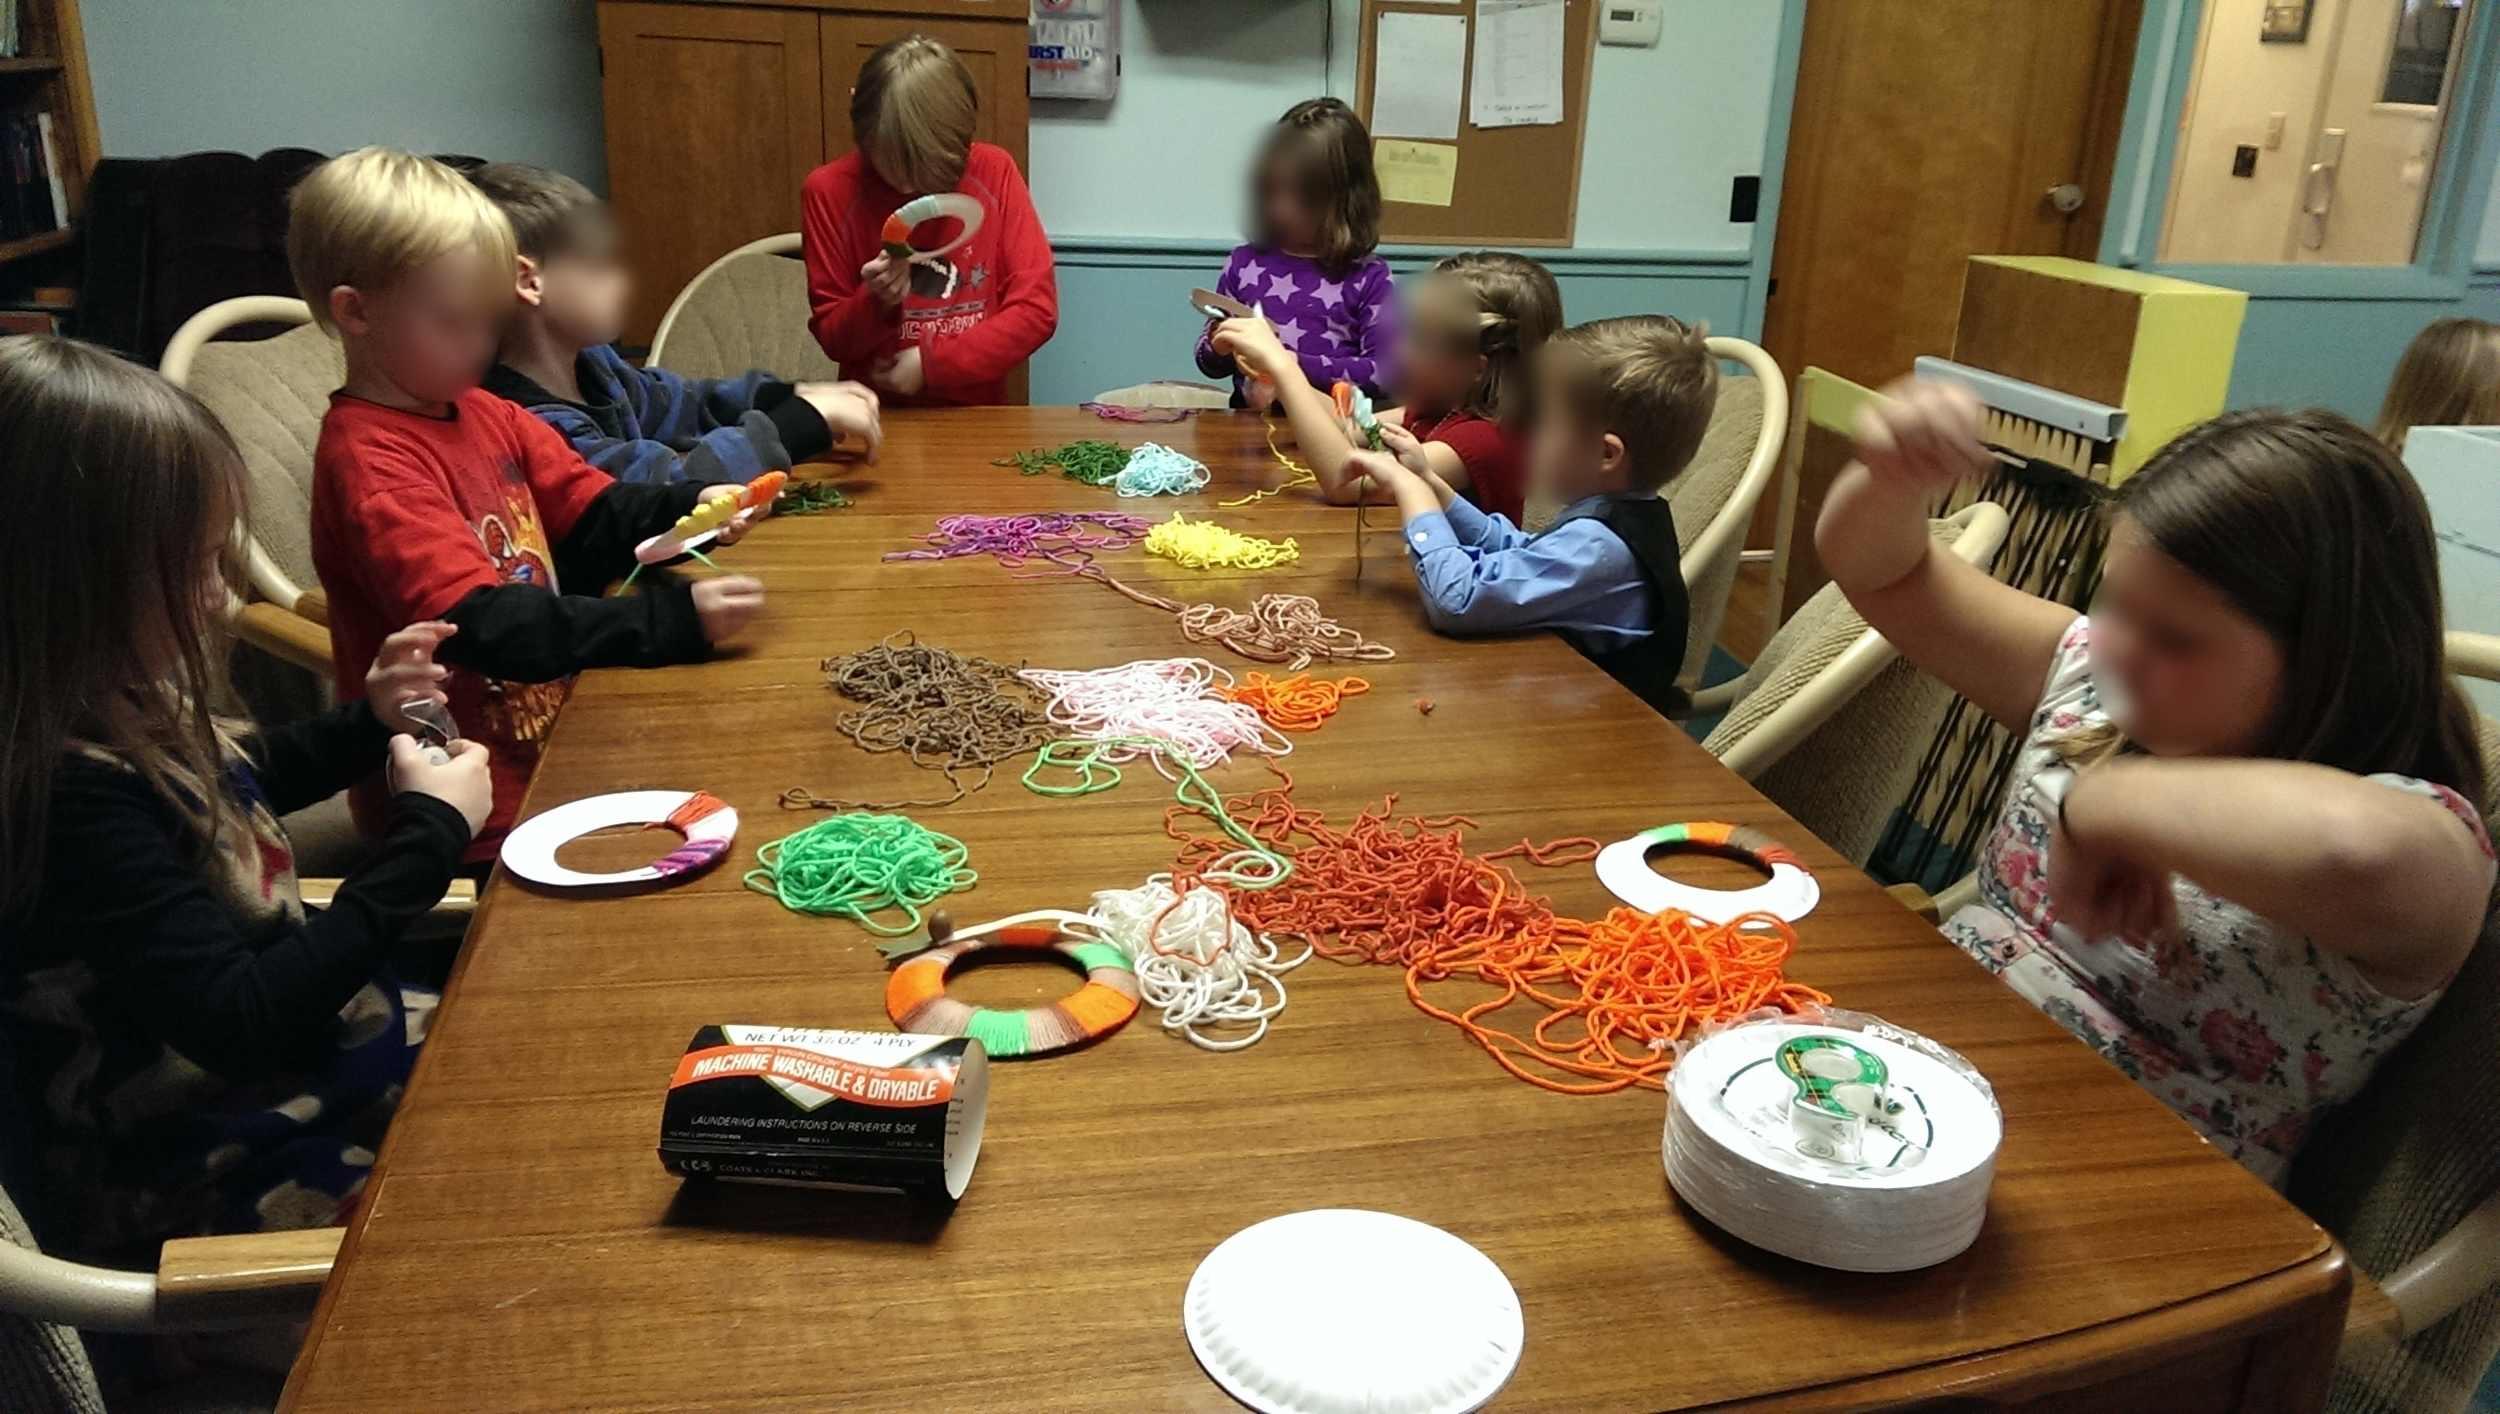 The kids are busily wrapping the yarn around their wreaths.